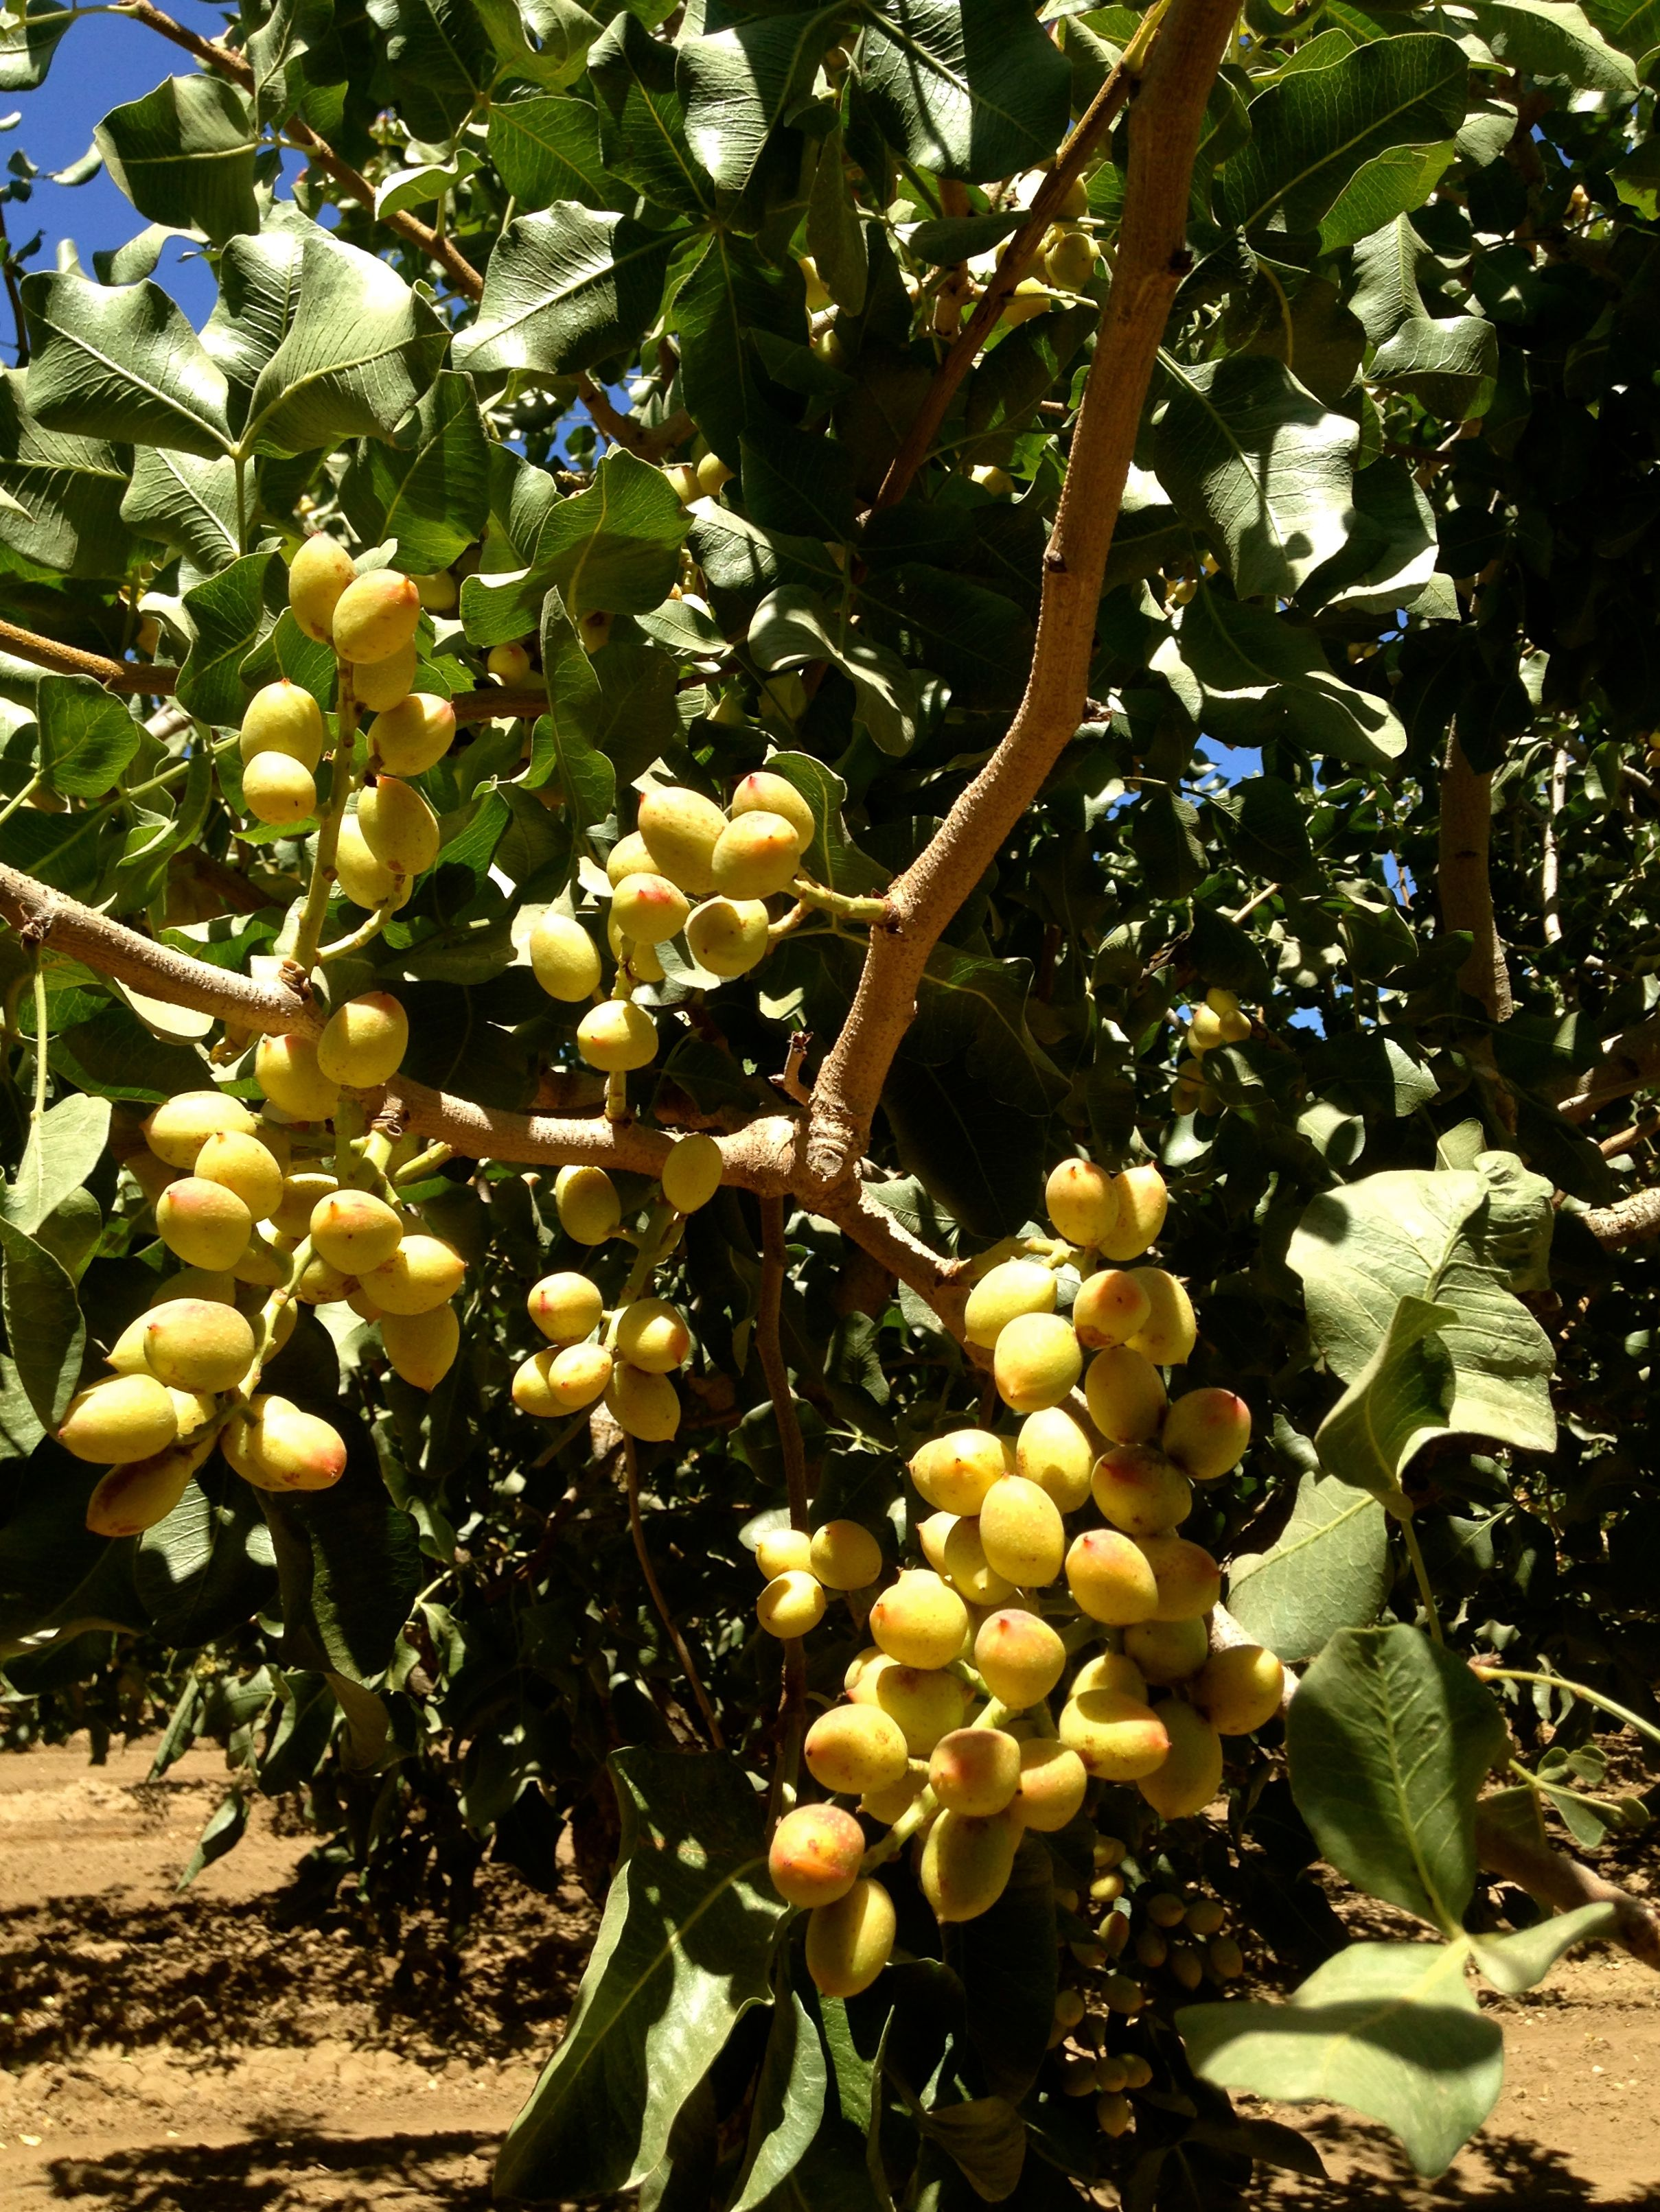 Growing Pistachios: Pistachio Nut Clusters Naturally Ripen On The Branch